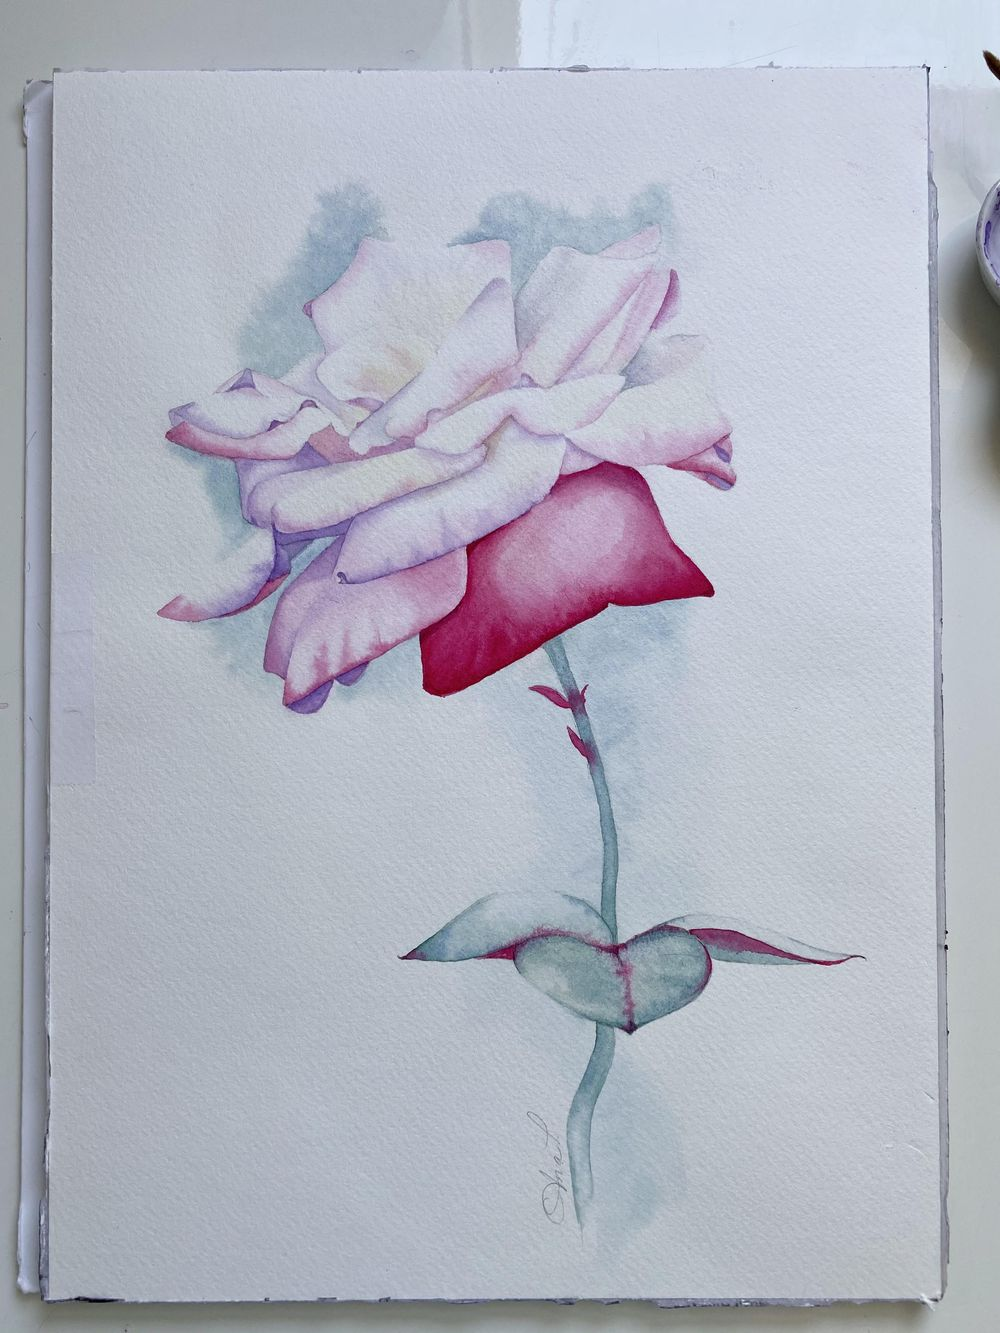 Watercolor Rose Ana T - image 3 - student project